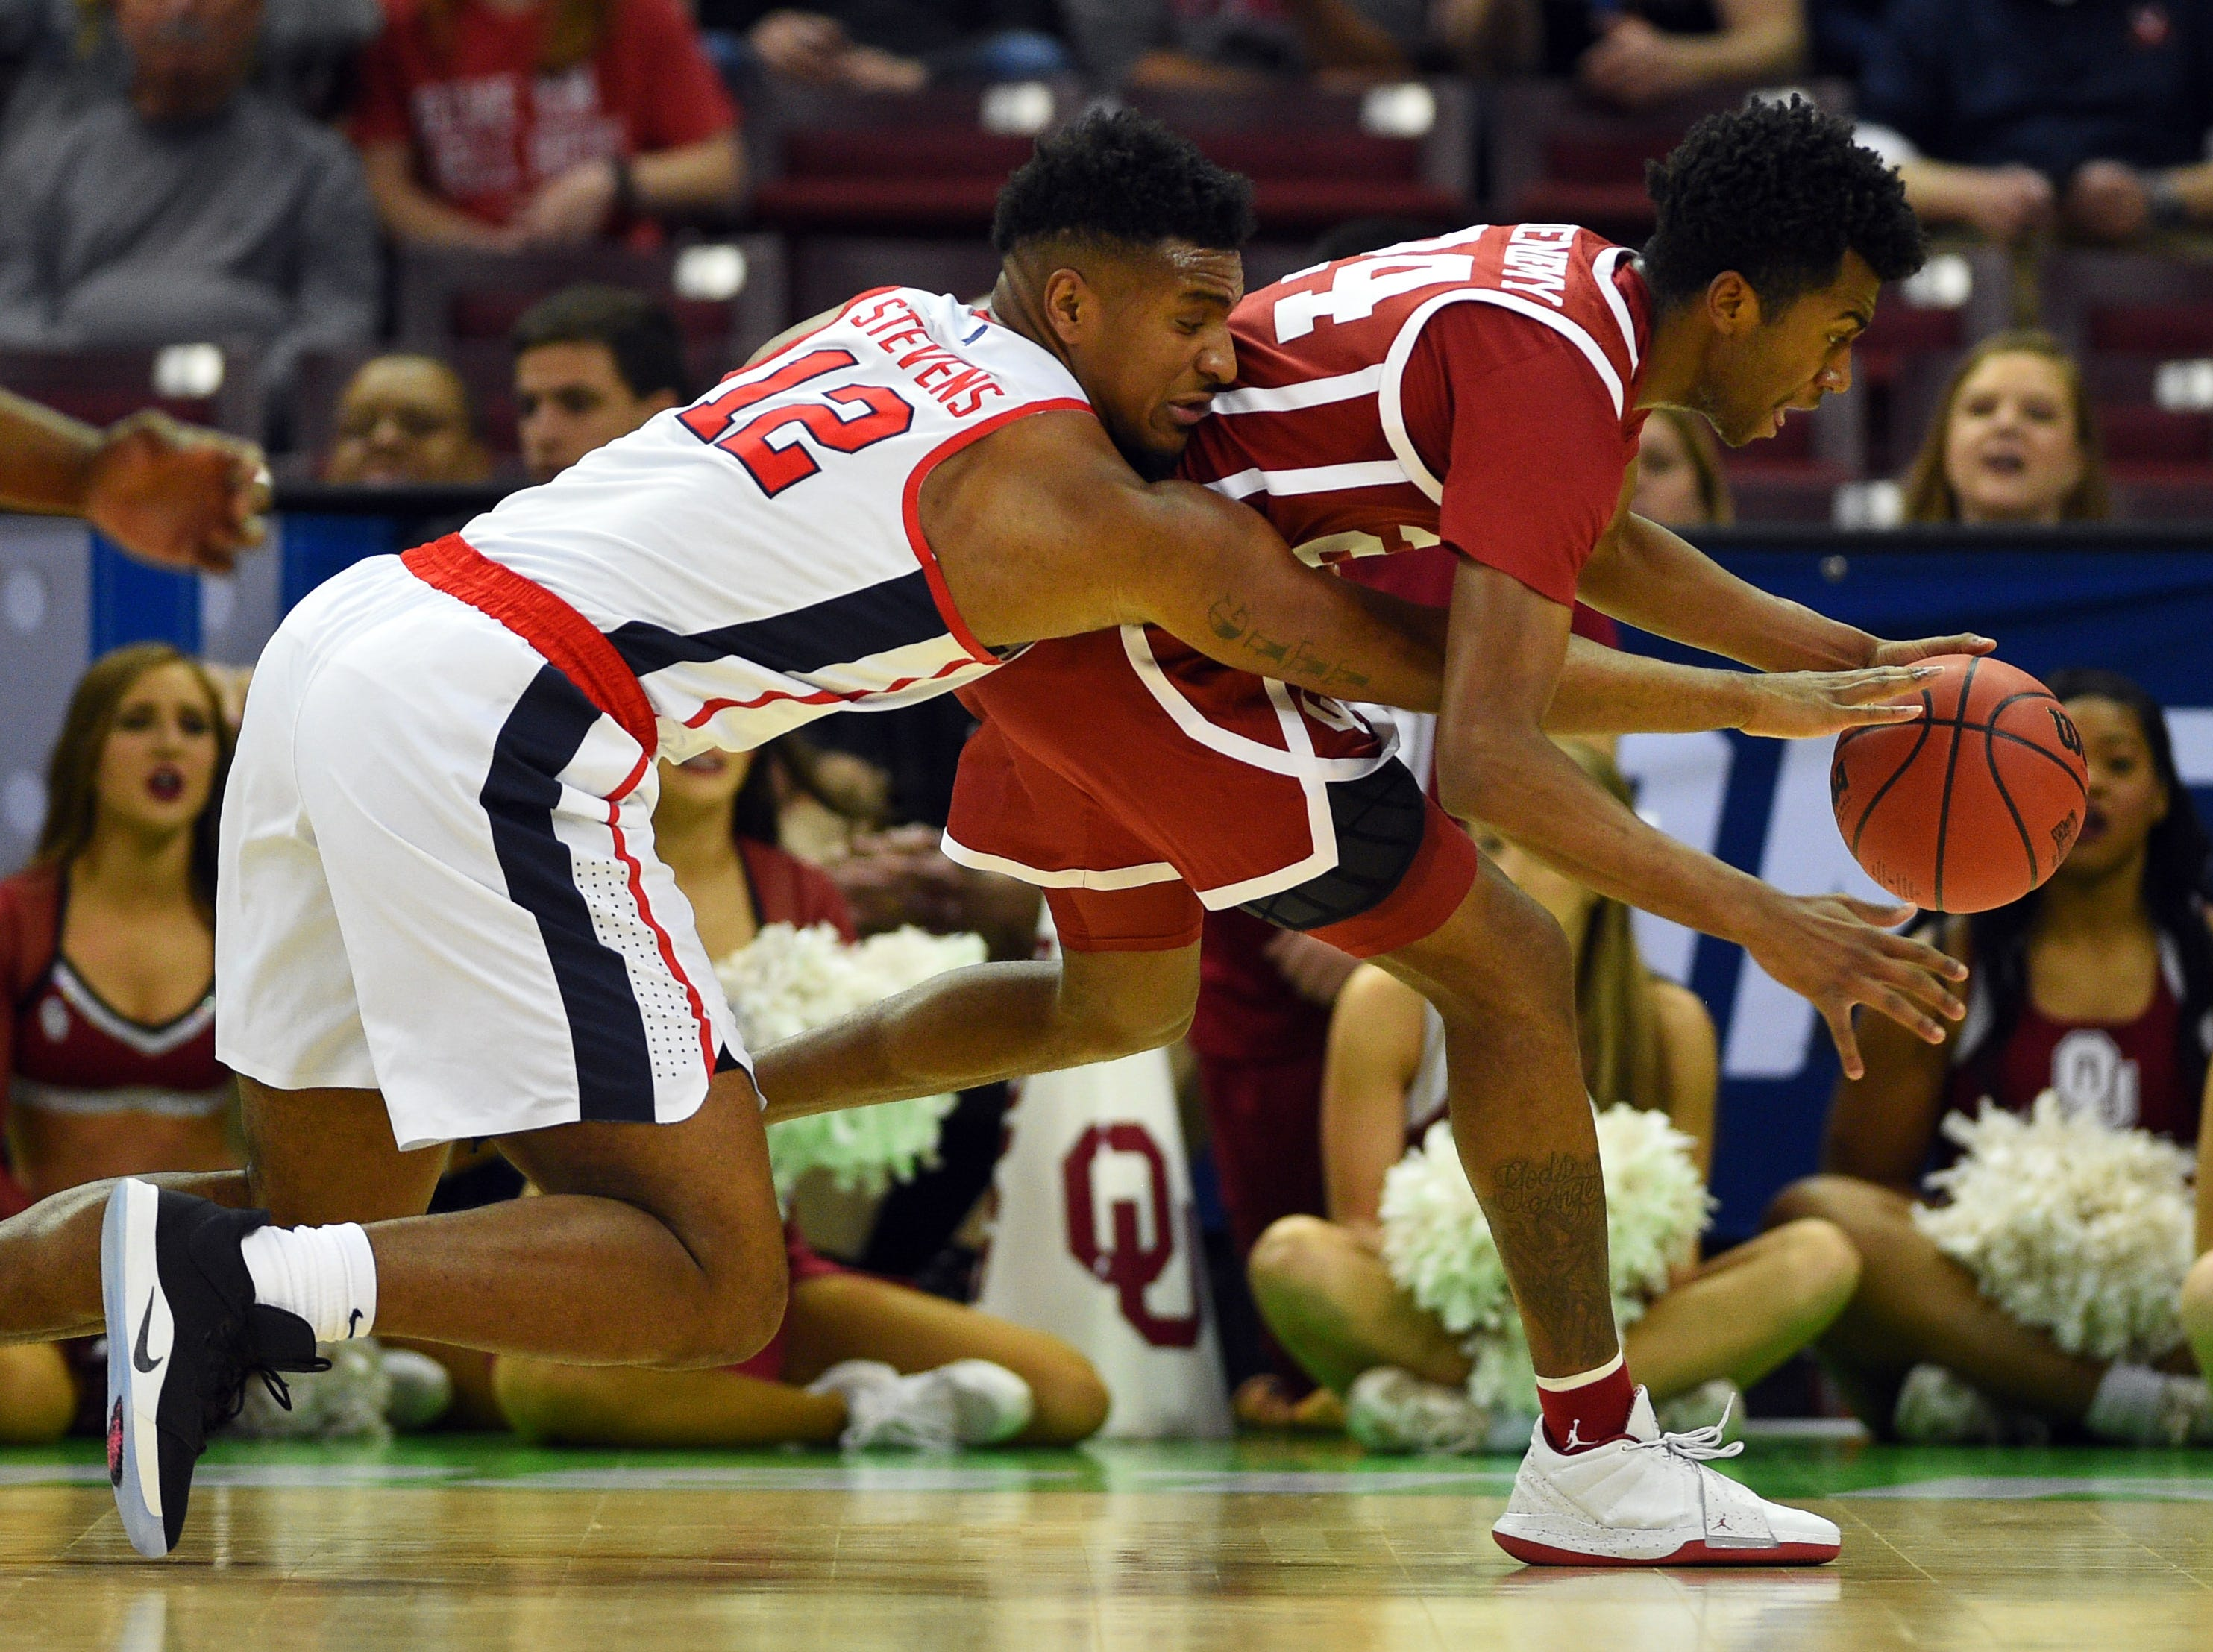 Mar 22, 2019; Columbia, SC, USA; Mississippi Rebels forward Bruce Stevens (12) and Oklahoma Sooners guard Jamal Bieniemy (24) battle for a loose ball during the first half in the first round of the 2019 NCAA Tournament at Colonial Life Arena. Mandatory Credit: Bob Donnan-USA TODAY Sports